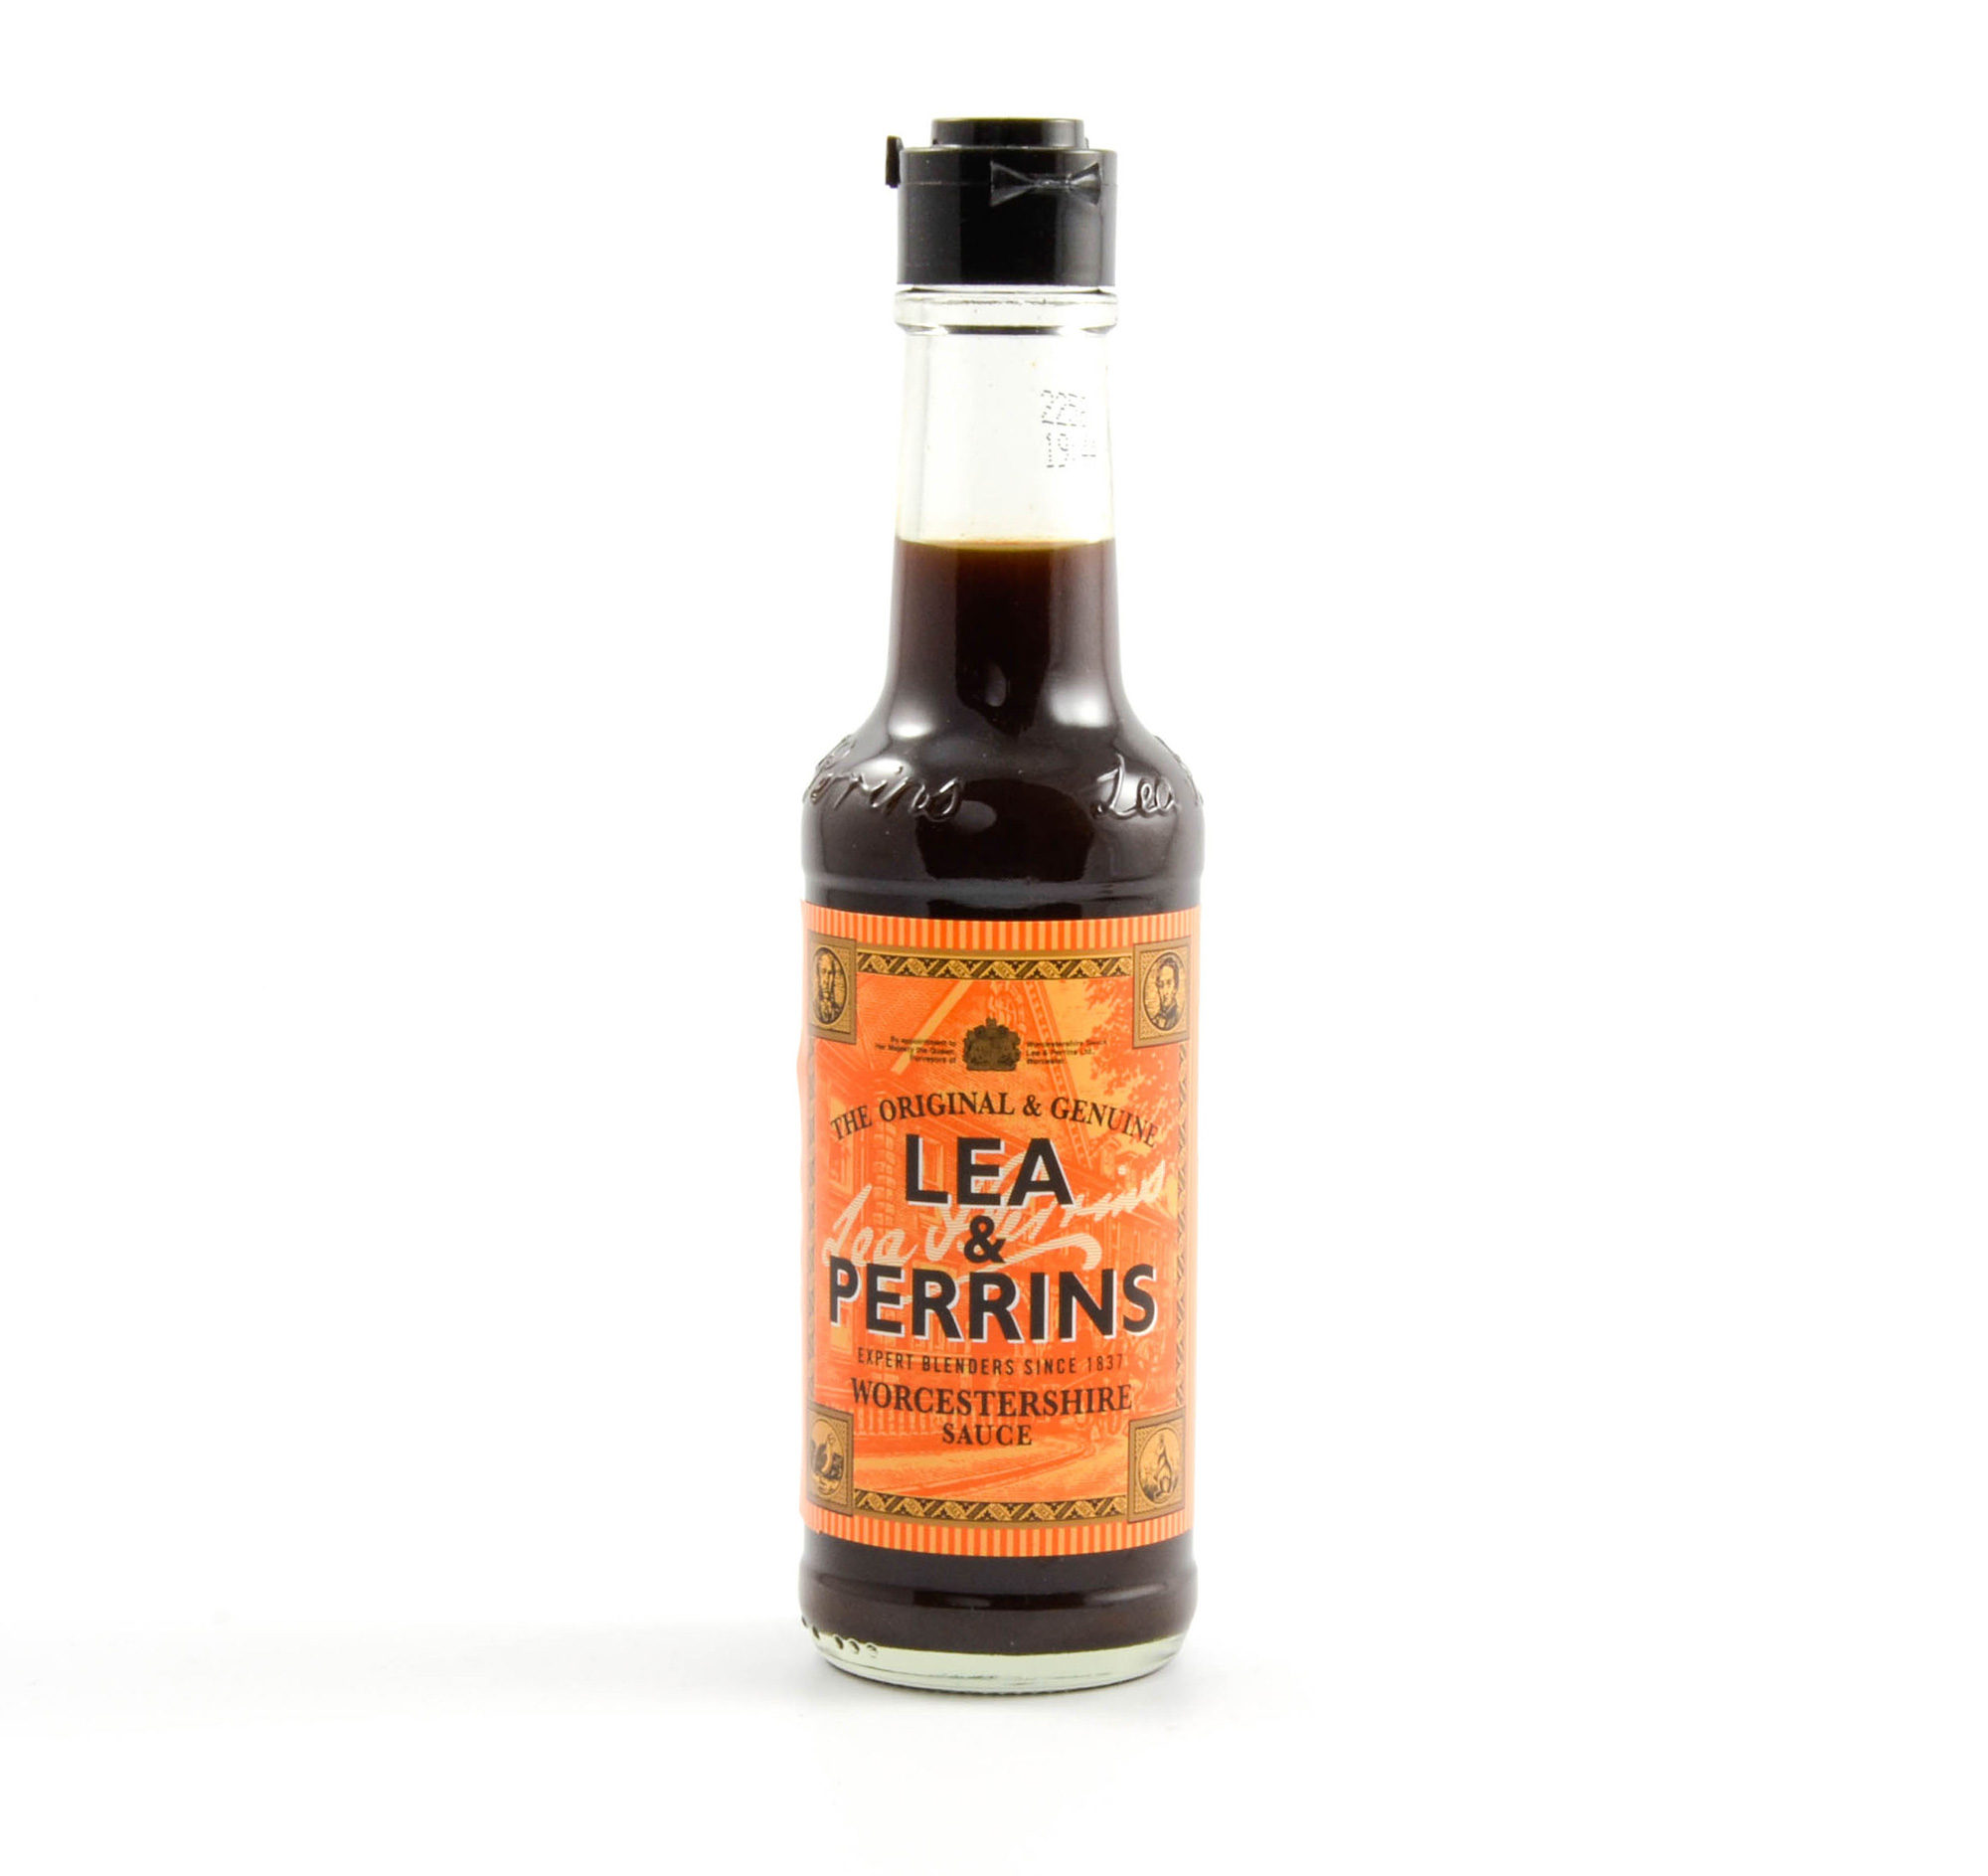 ... sauce hot fudge sauce morrisons lea perrins worcestershire sauce 290ml